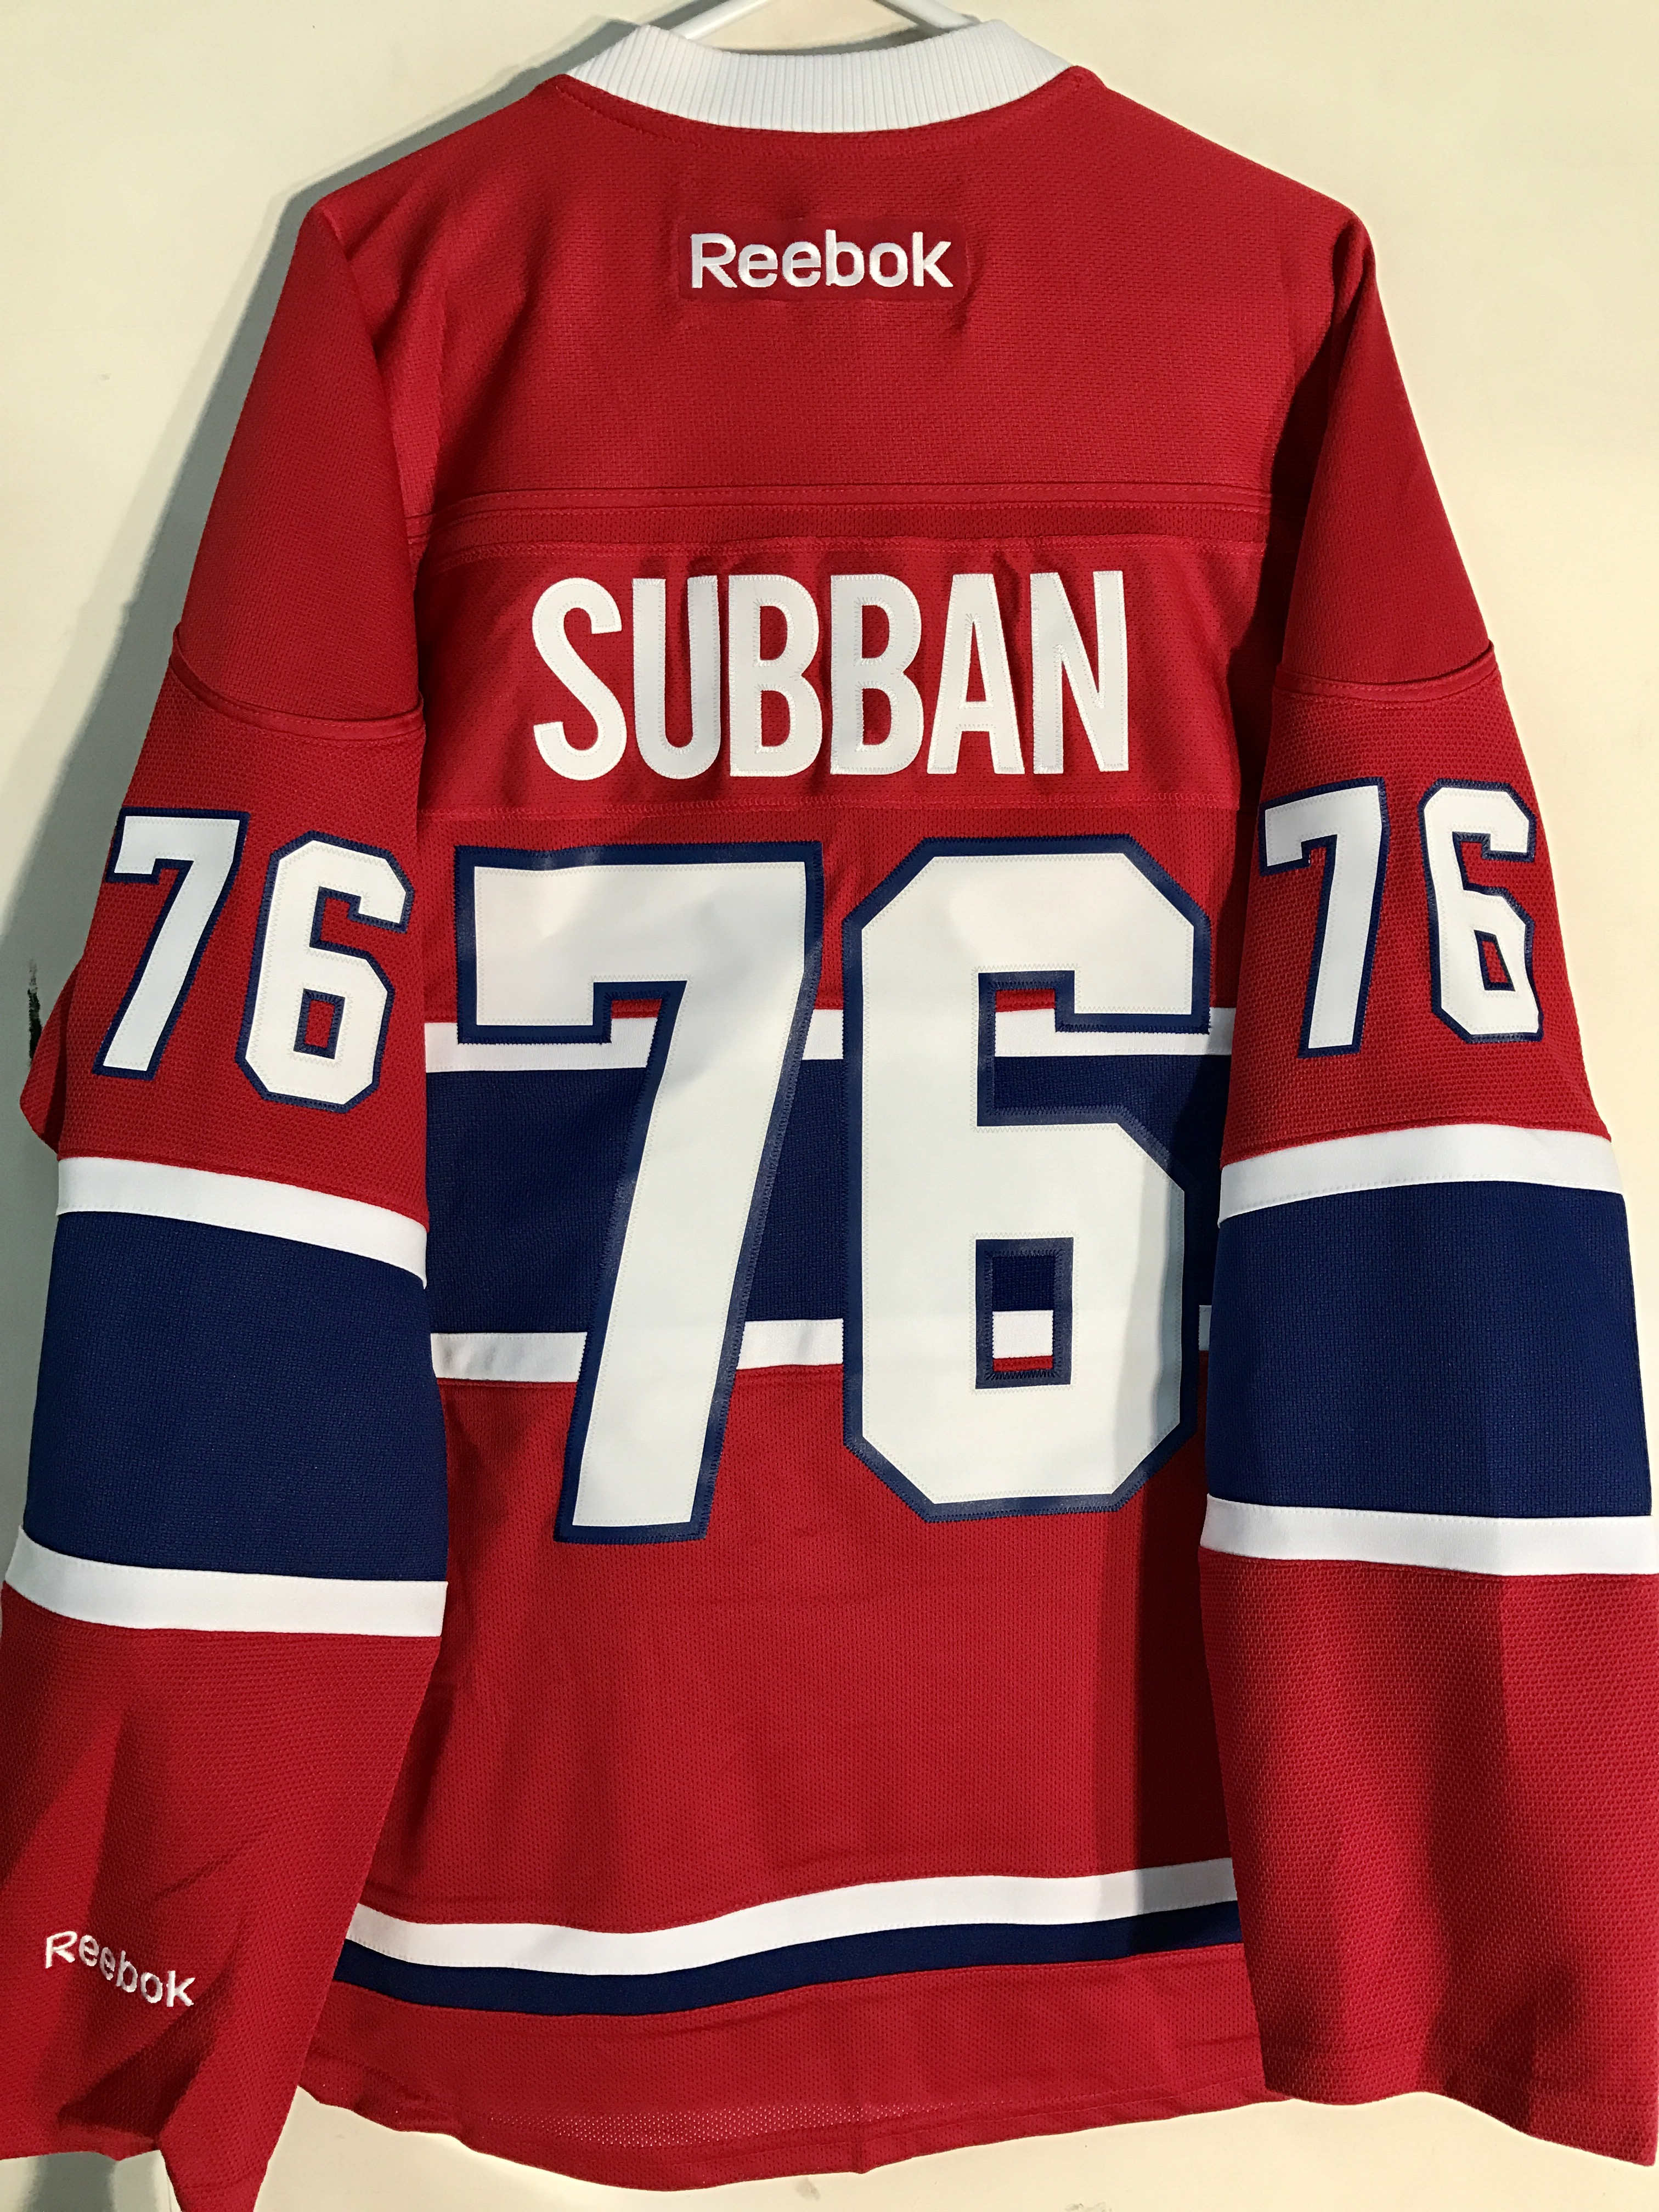 660bfe8b3aa Reebok Premier NHL Jersey Montreal Canadiens P.K. Subban Red sz 2X ...